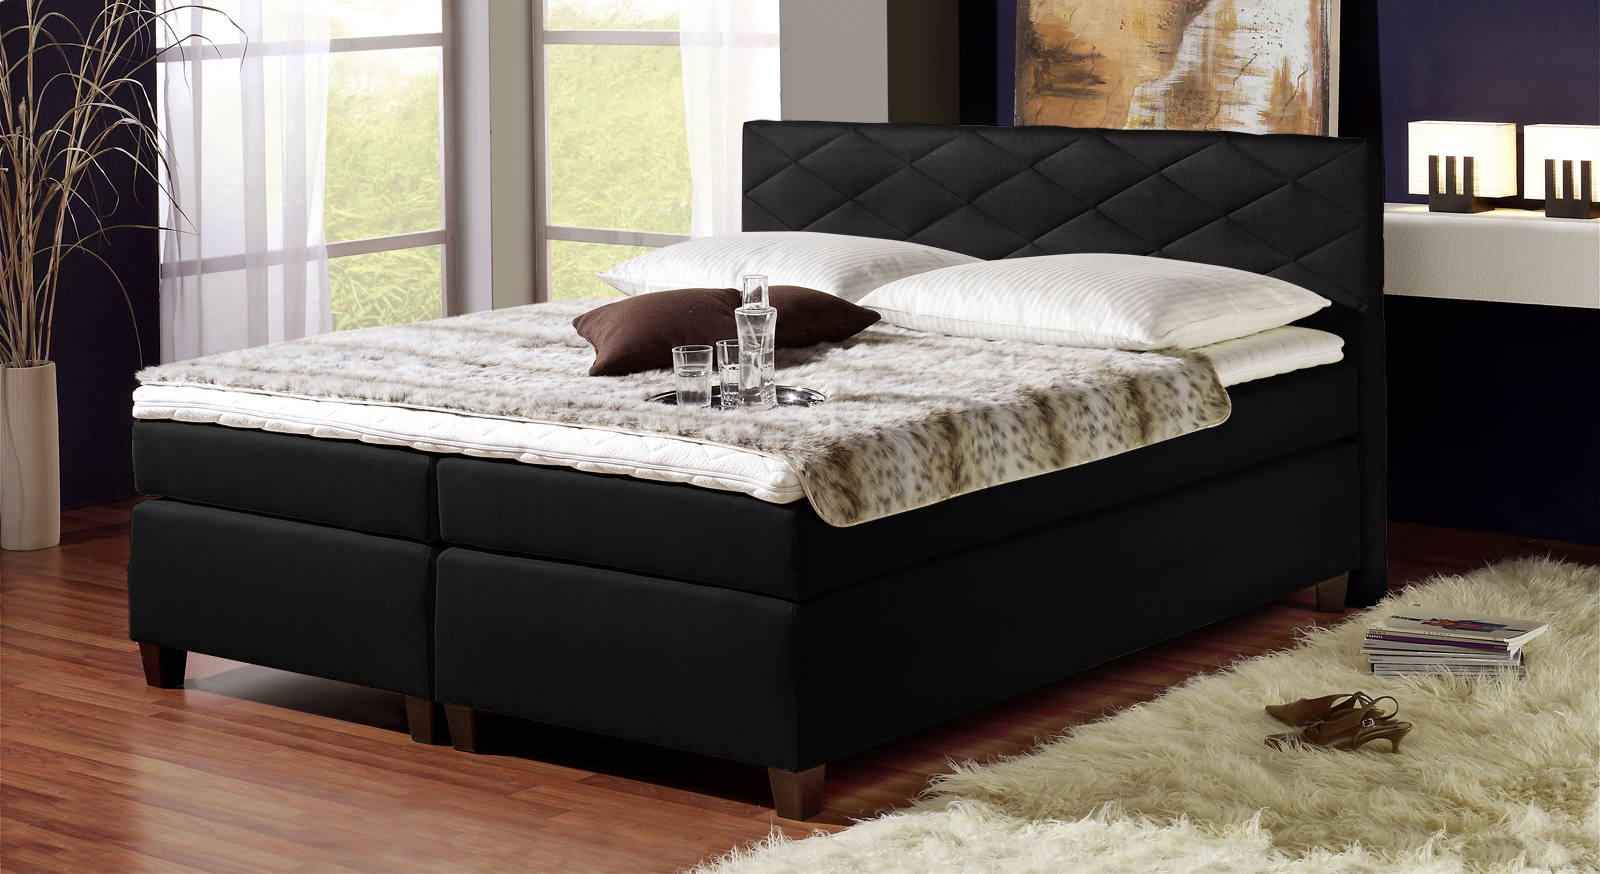 g nstiges hotelbett nizza z b in 140x200 cm kaufen. Black Bedroom Furniture Sets. Home Design Ideas